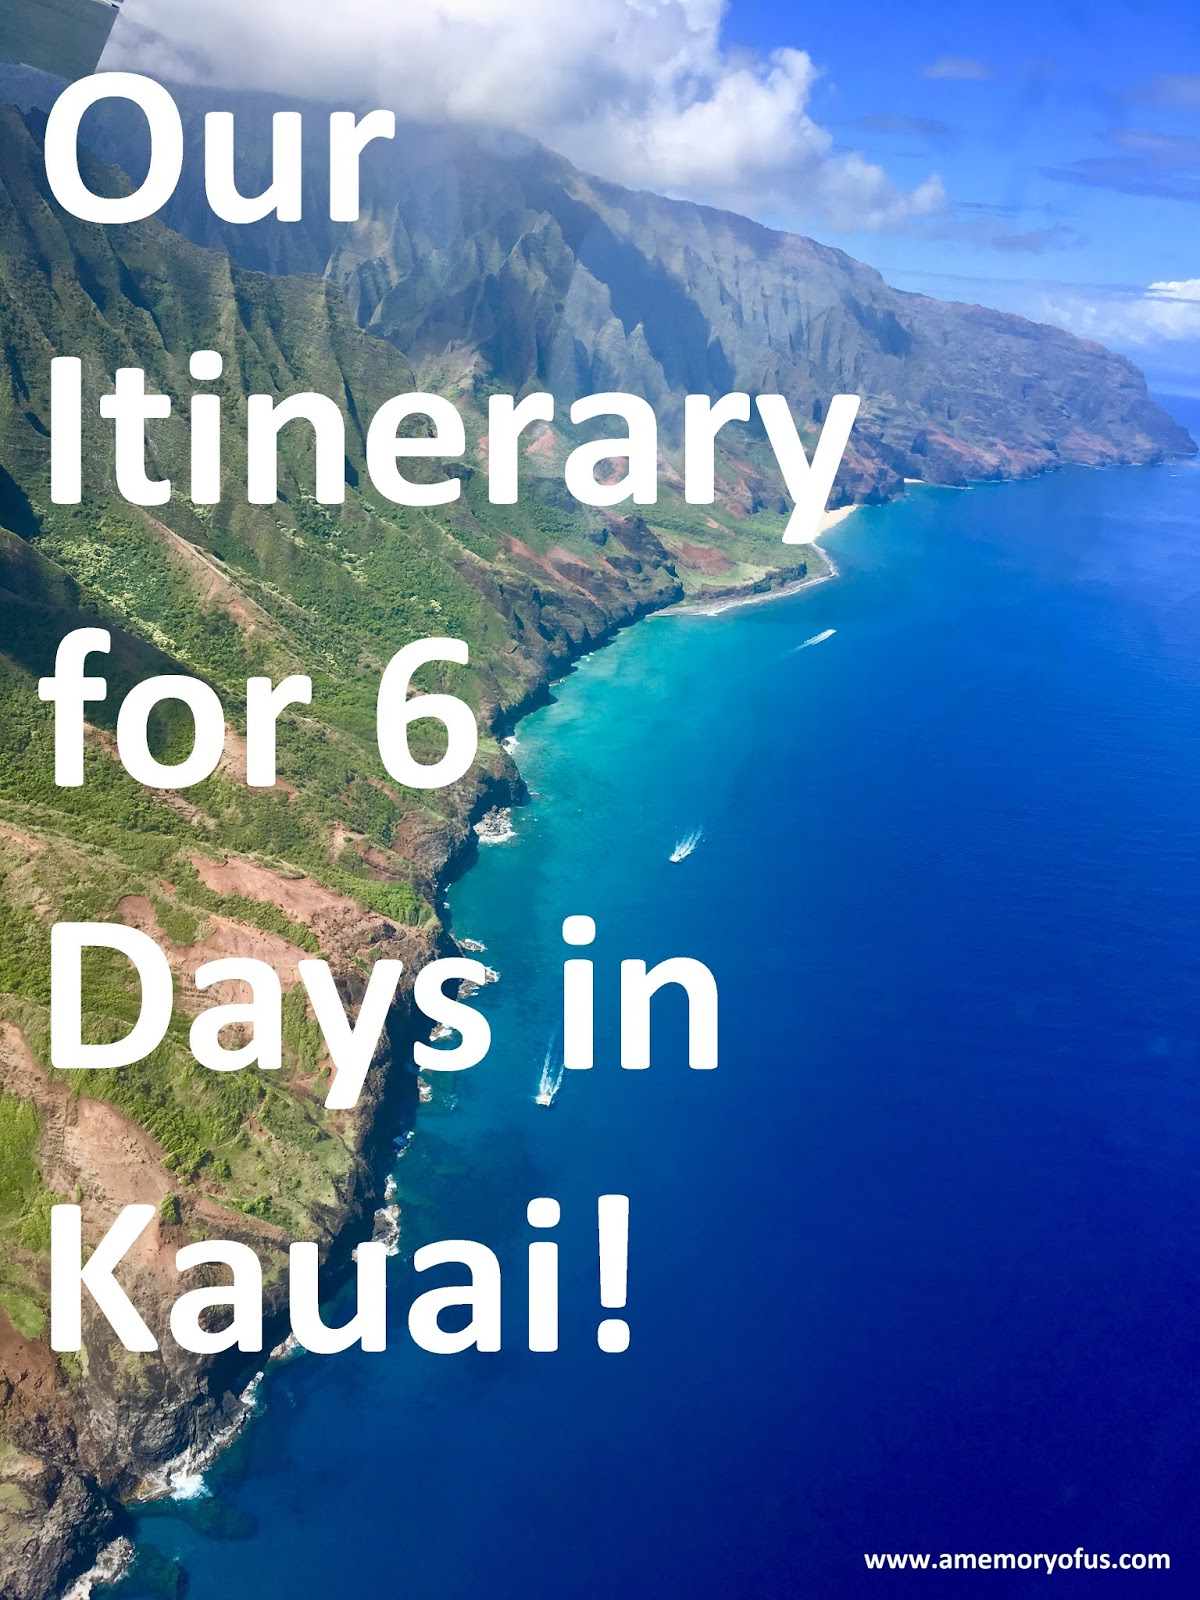 Our Itinerary for 6 Days in Kauai | What to do in Kauai | Six Days in Kauai | Kauai Itinerary  | A Memory of Us